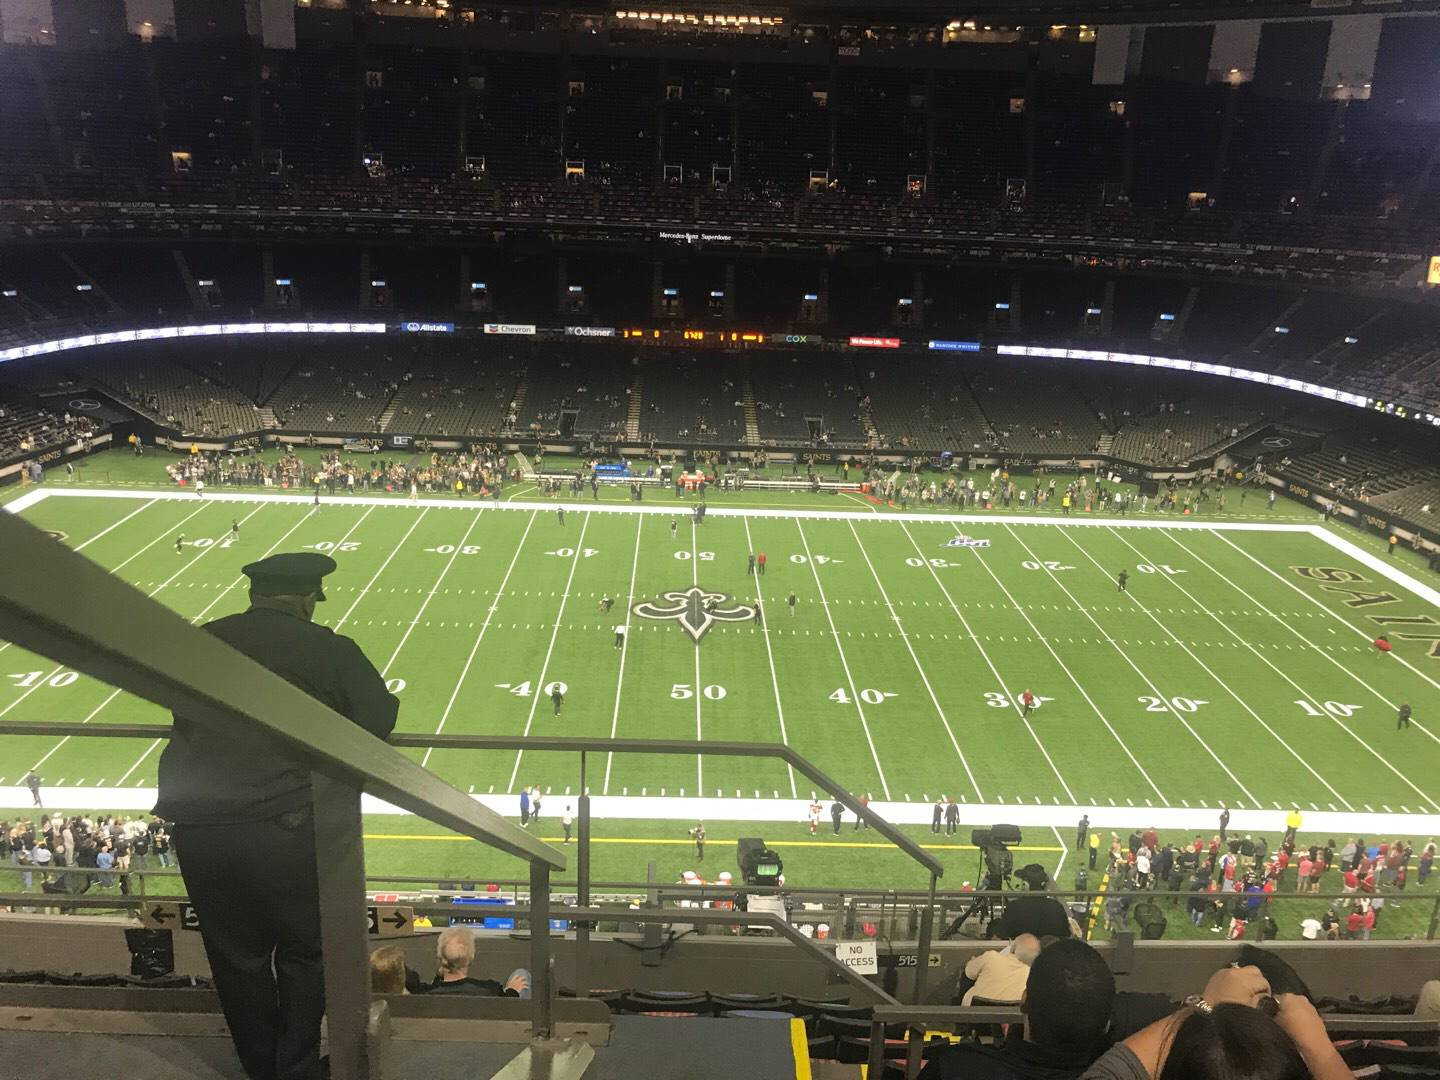 Mercedes-Benz Superdome Section 614 Row 10 Seat 11